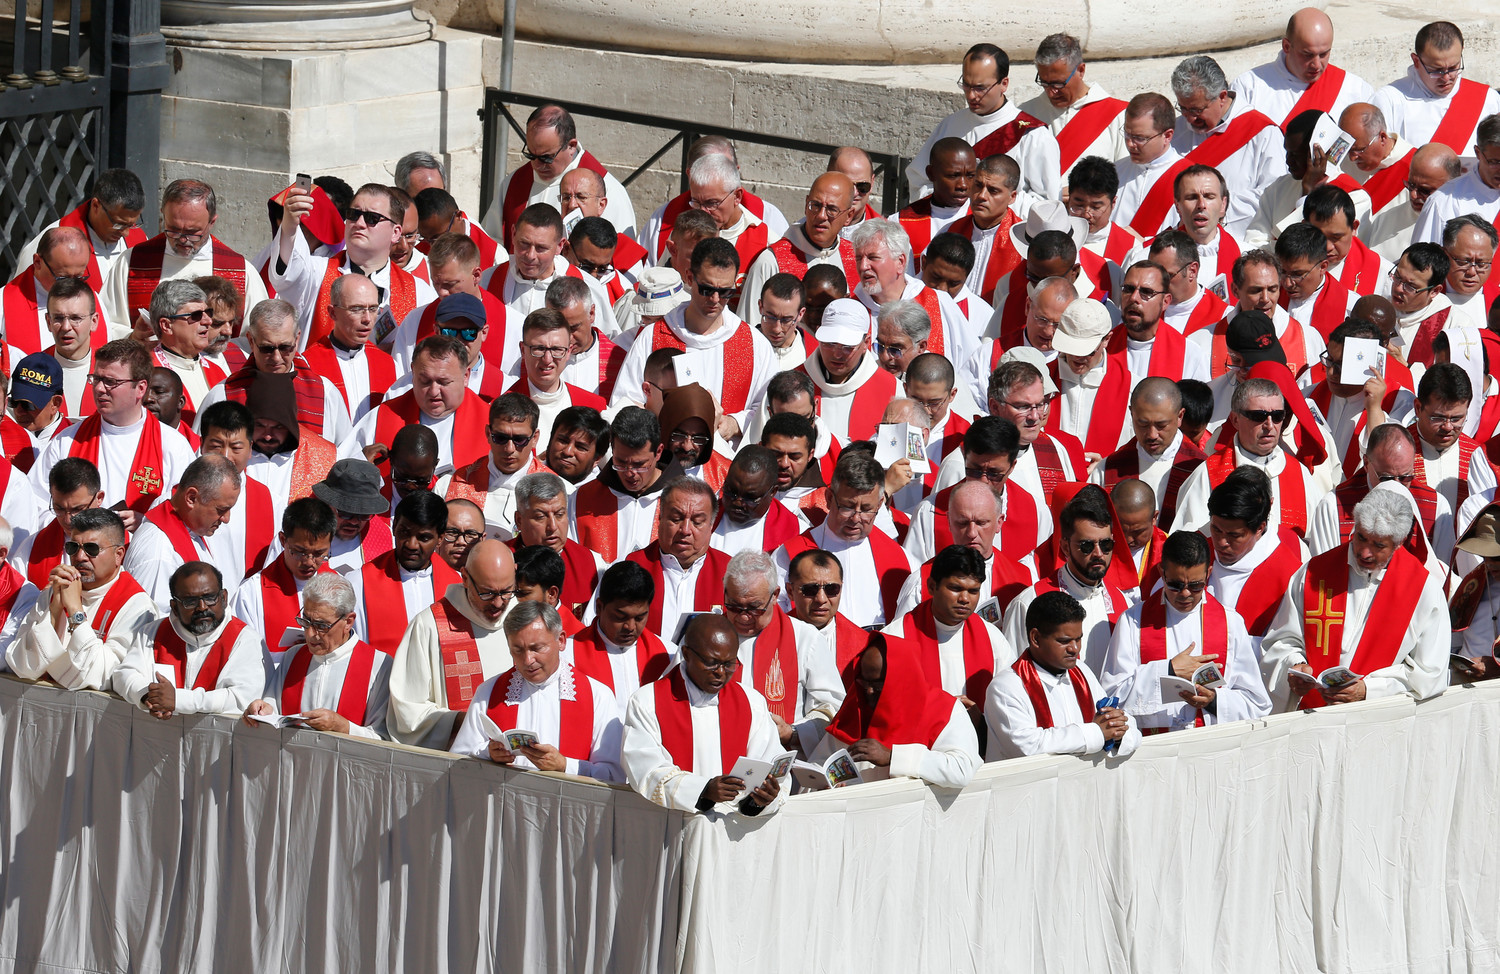 Priests attend Pope Francis' celebration of Mass marking the feast of Saints Peter and Paul in St. Peter's Square at the Vatican June 29. At the conclusion of the Mass the Pope presented palliums in boxes to dozens of new archbishops from around the world.